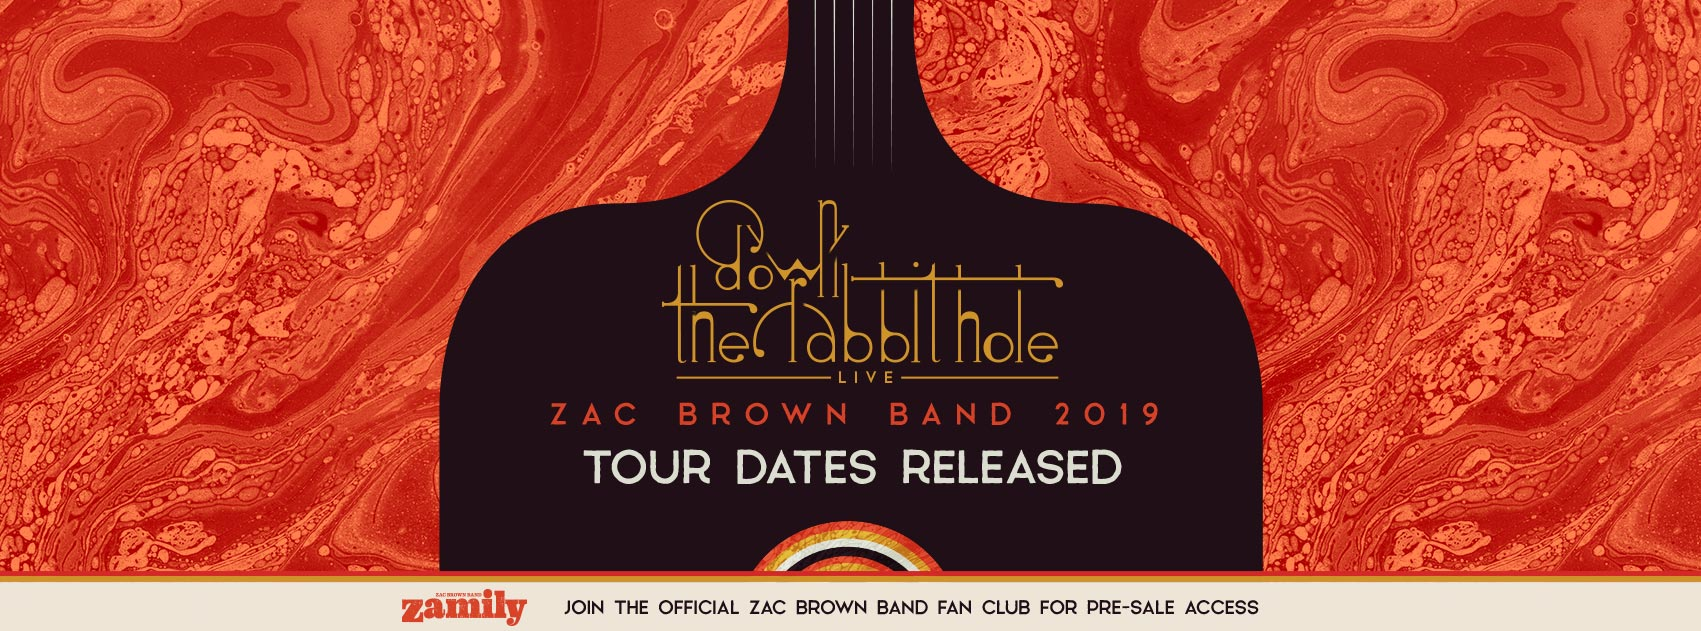 Down The Rabbit Hole Tour